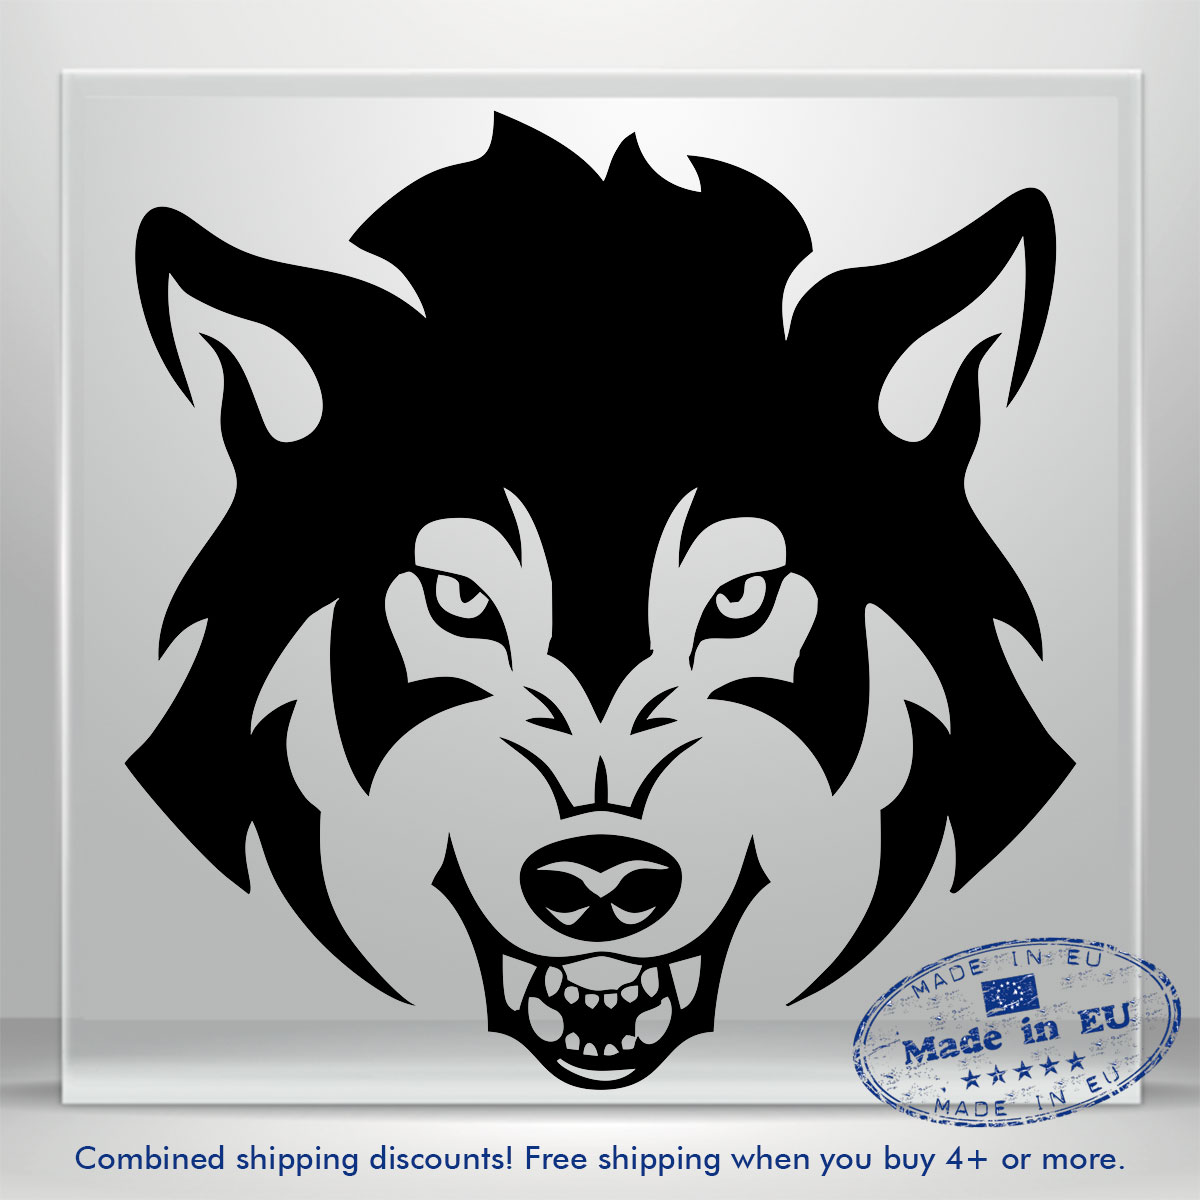 Details about wolf dog scary face jdm auto car bumper window vinyl decal sticker laptop tablet